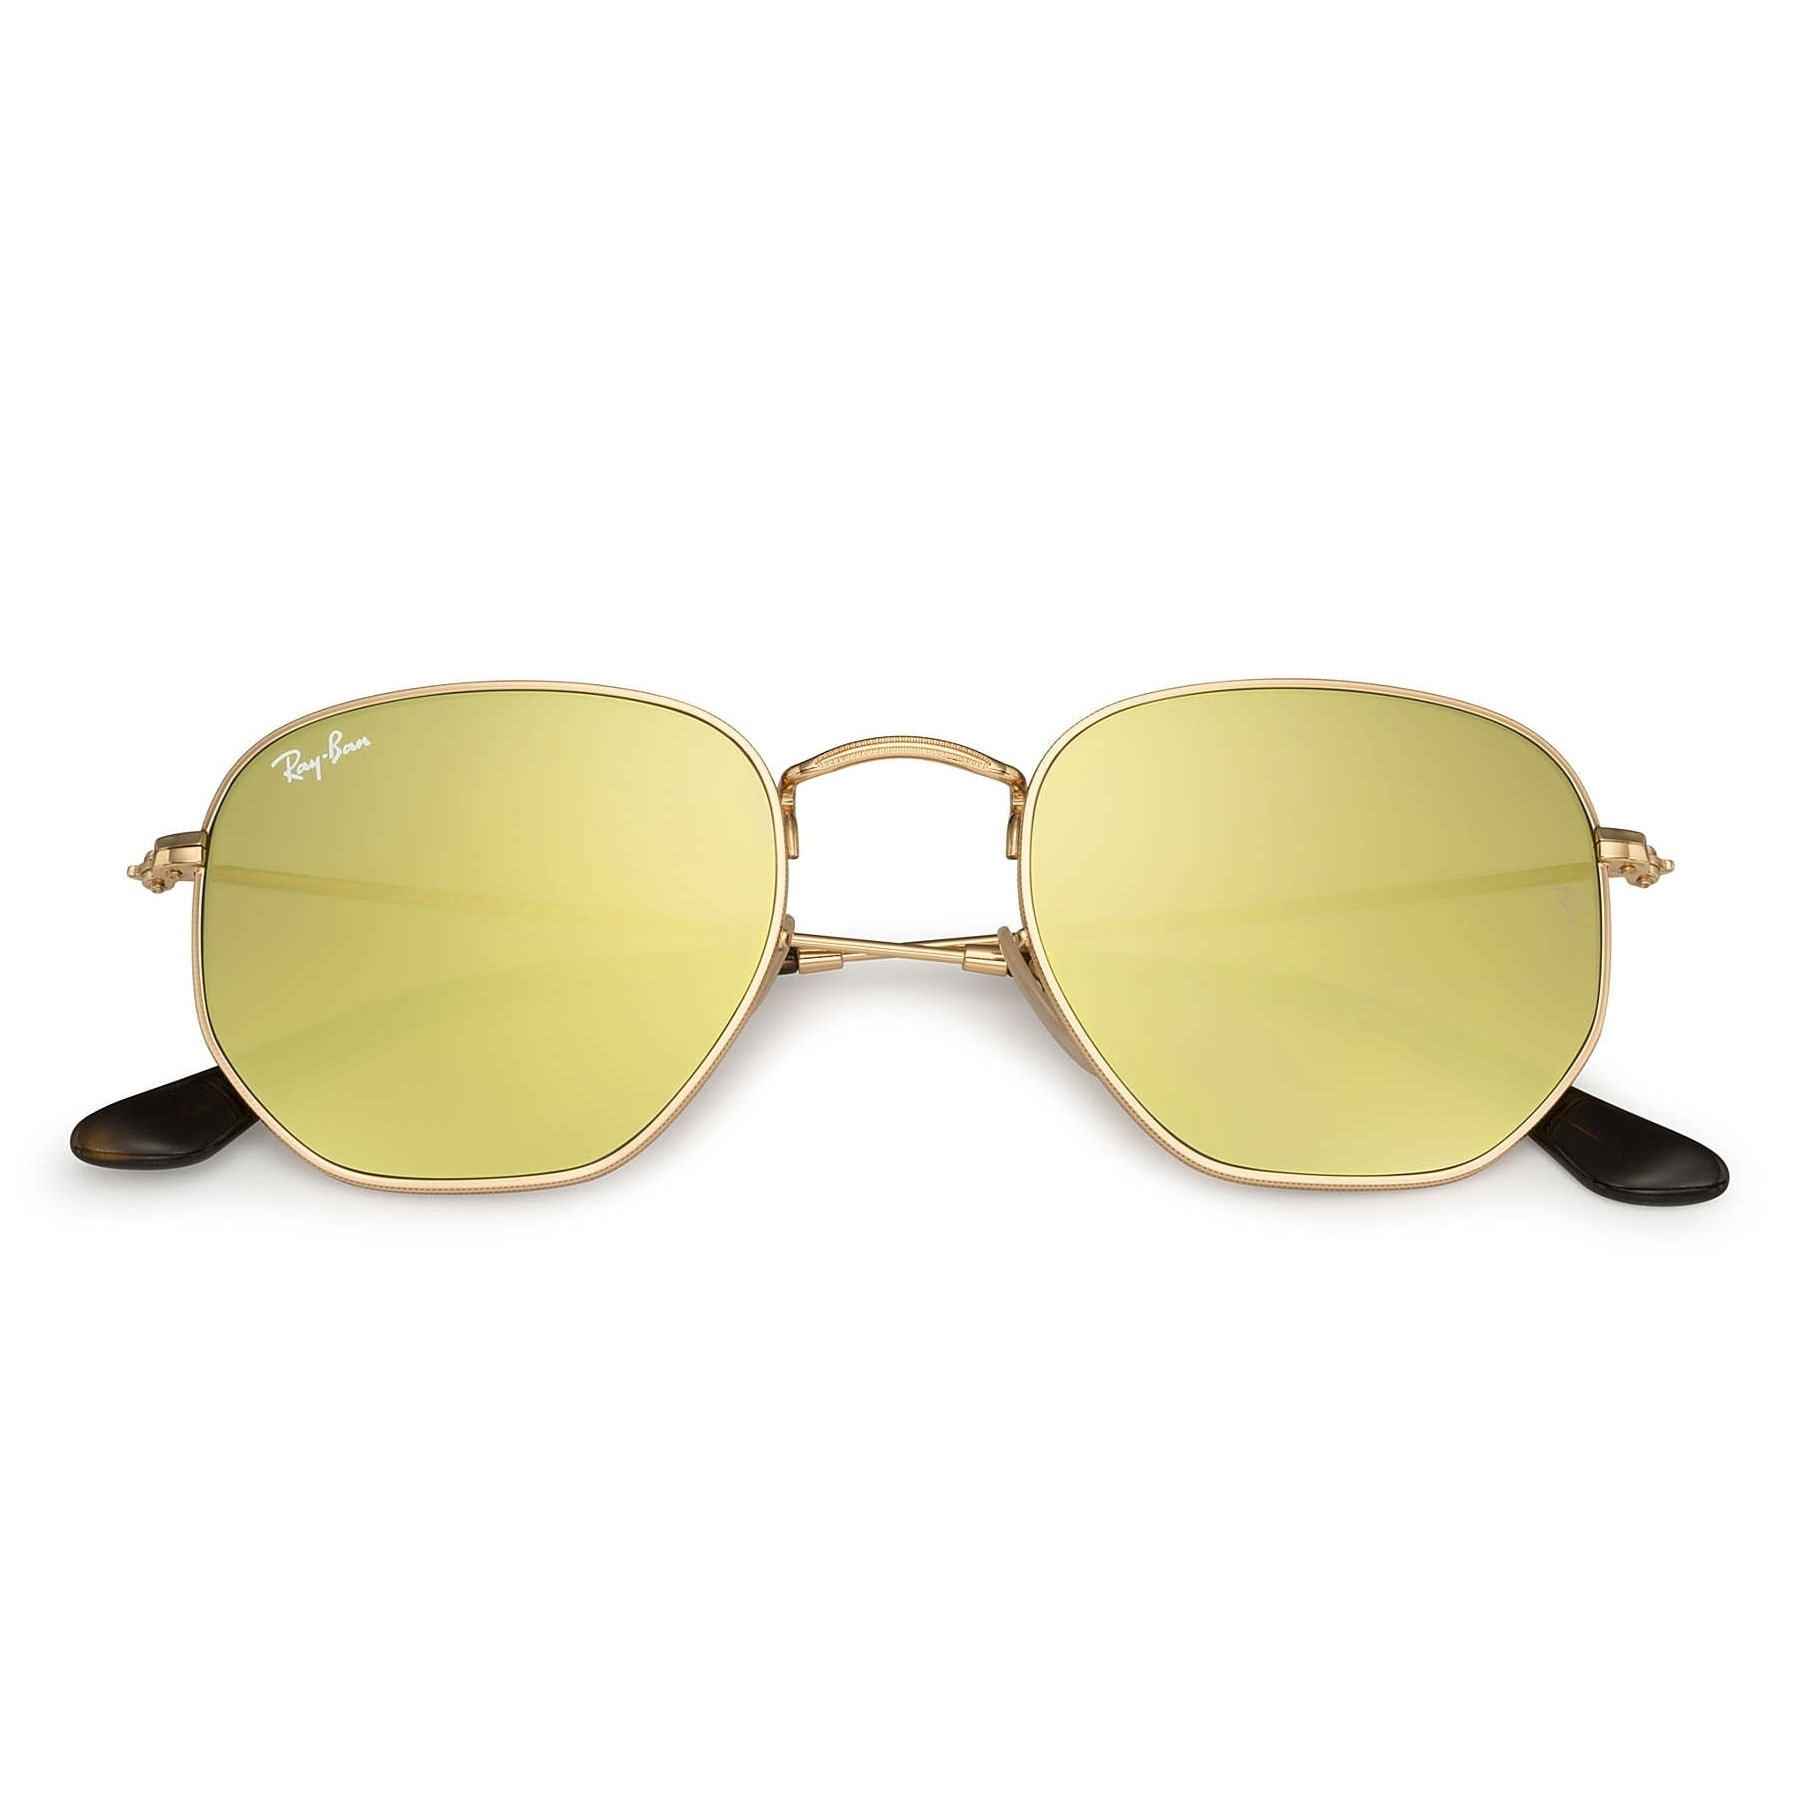 74661ea569 Shop Ray-Ban RB3548N Hexagonal Flat Lenses Sunglasses Gold  Yellow Flash  51mm - Gold - Free Shipping Today - Overstock - 20603406